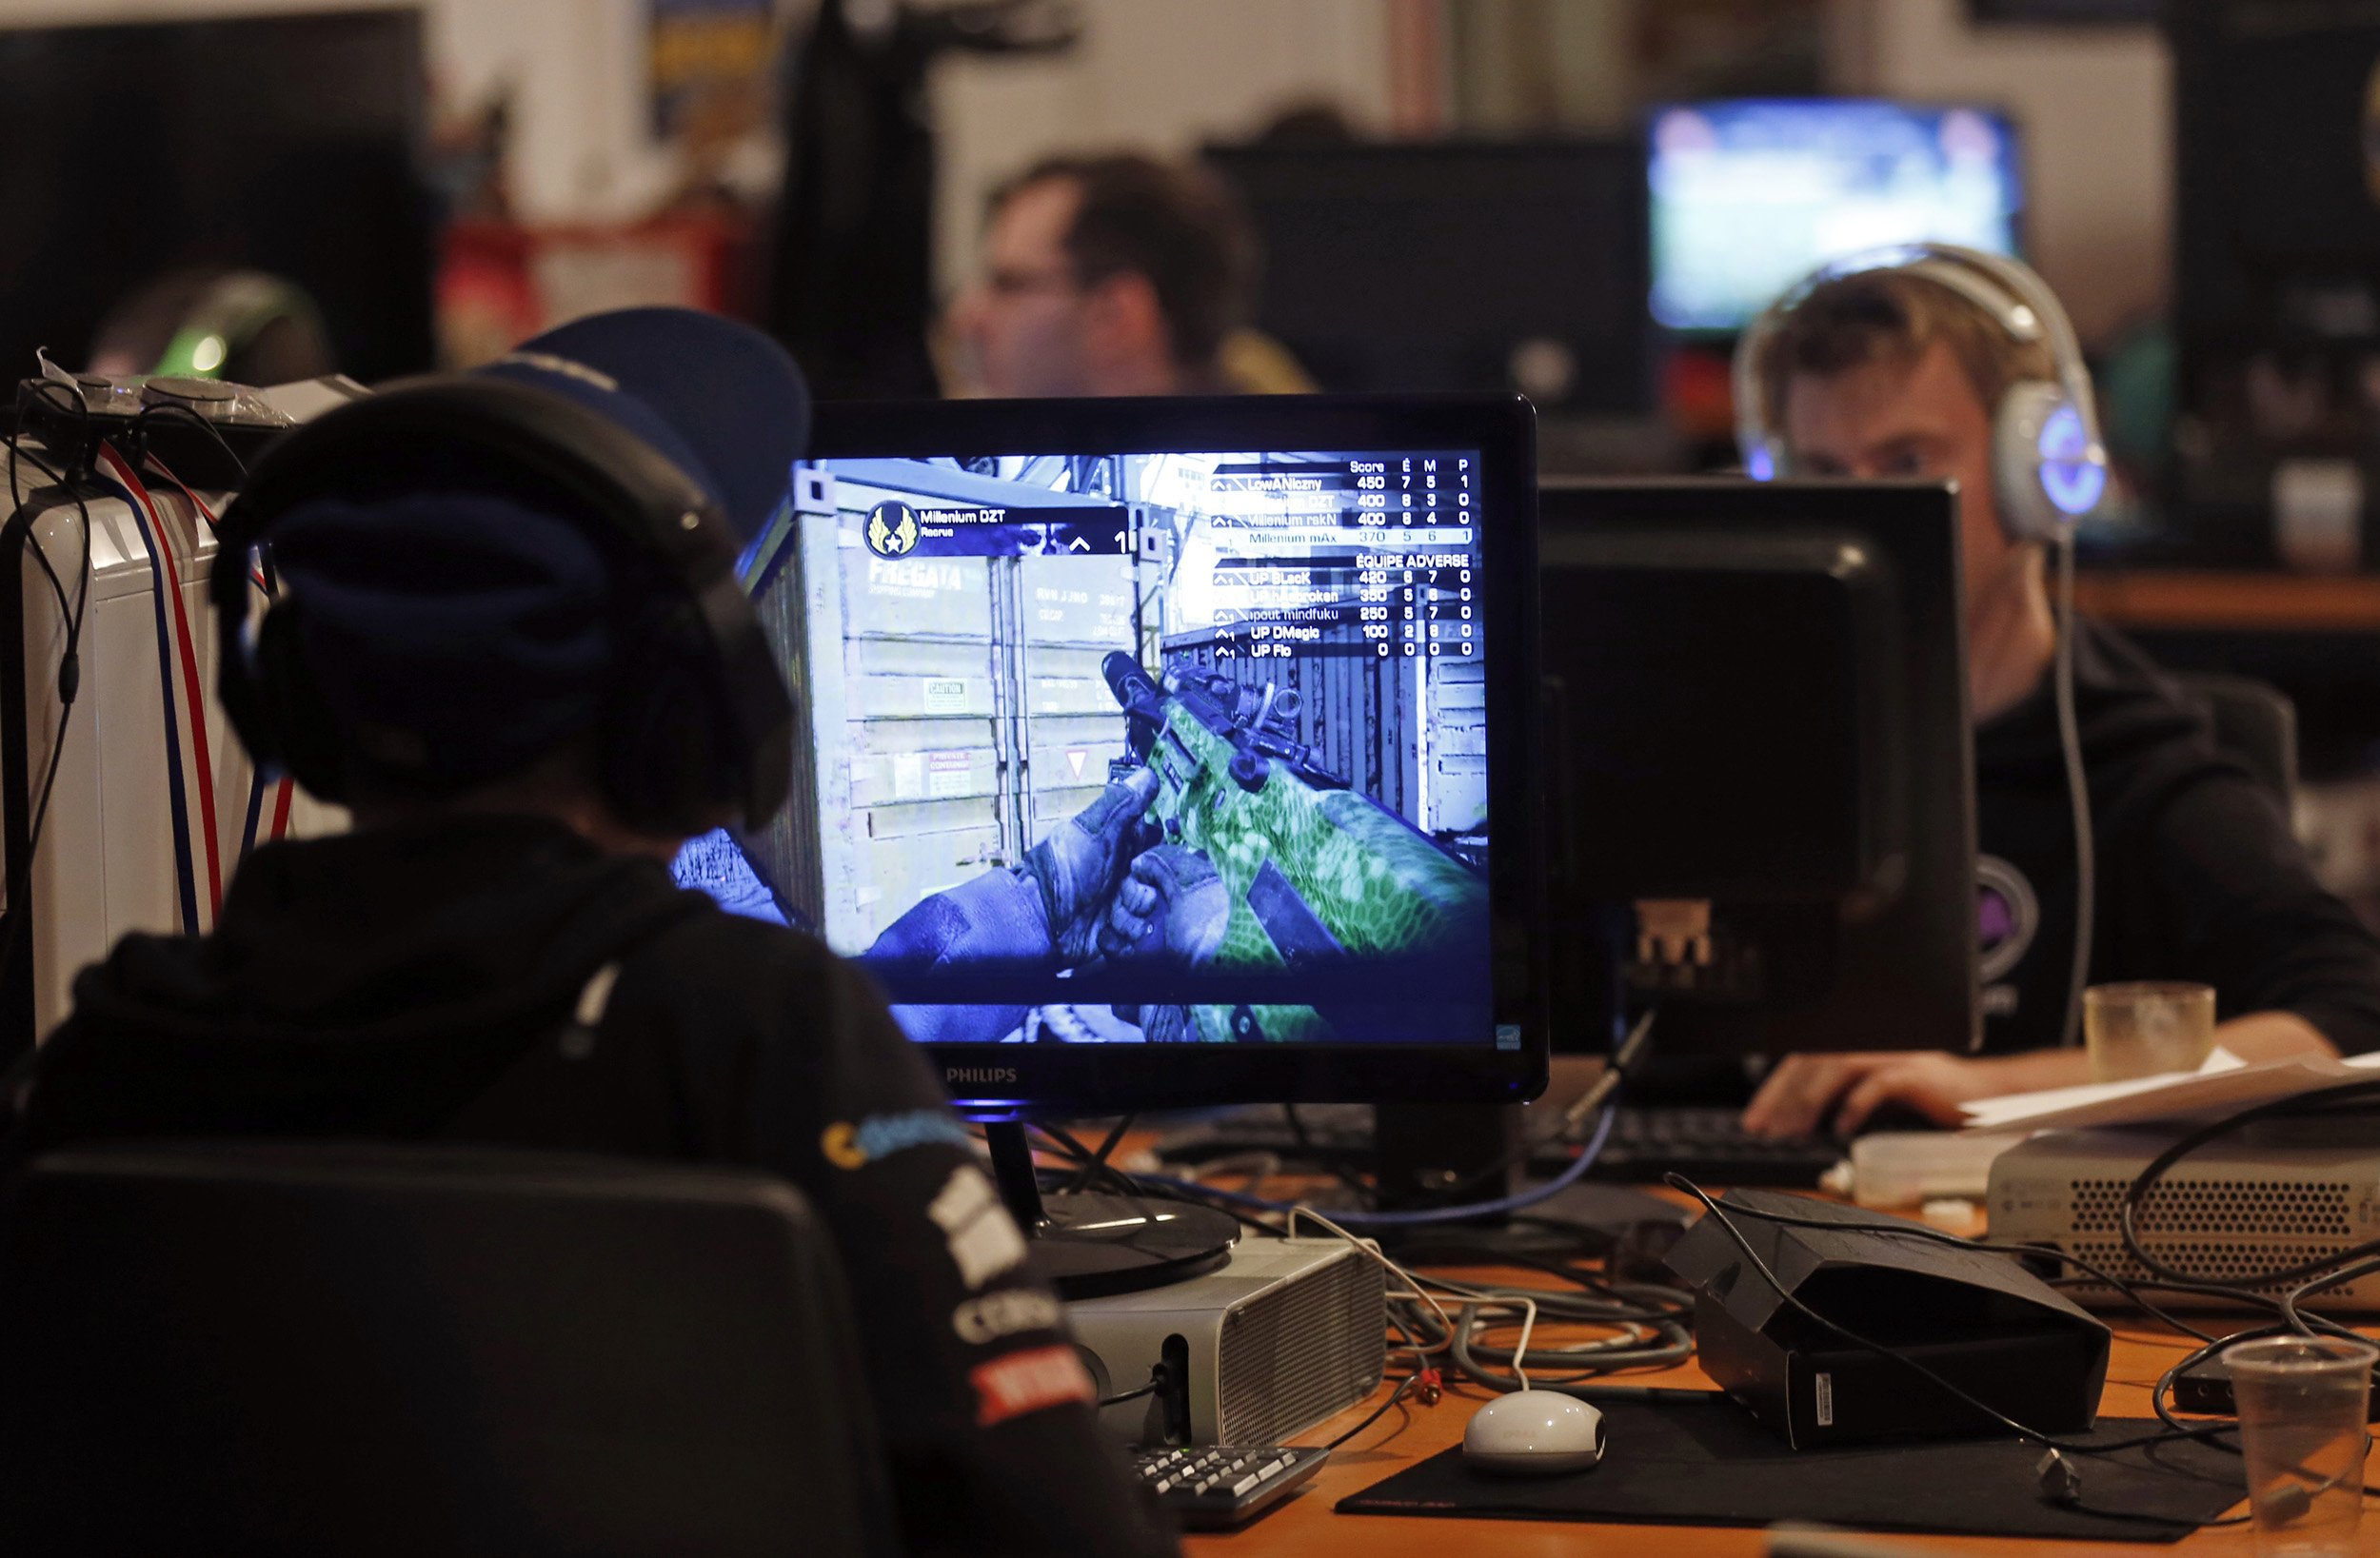 07_24_Gamers_01